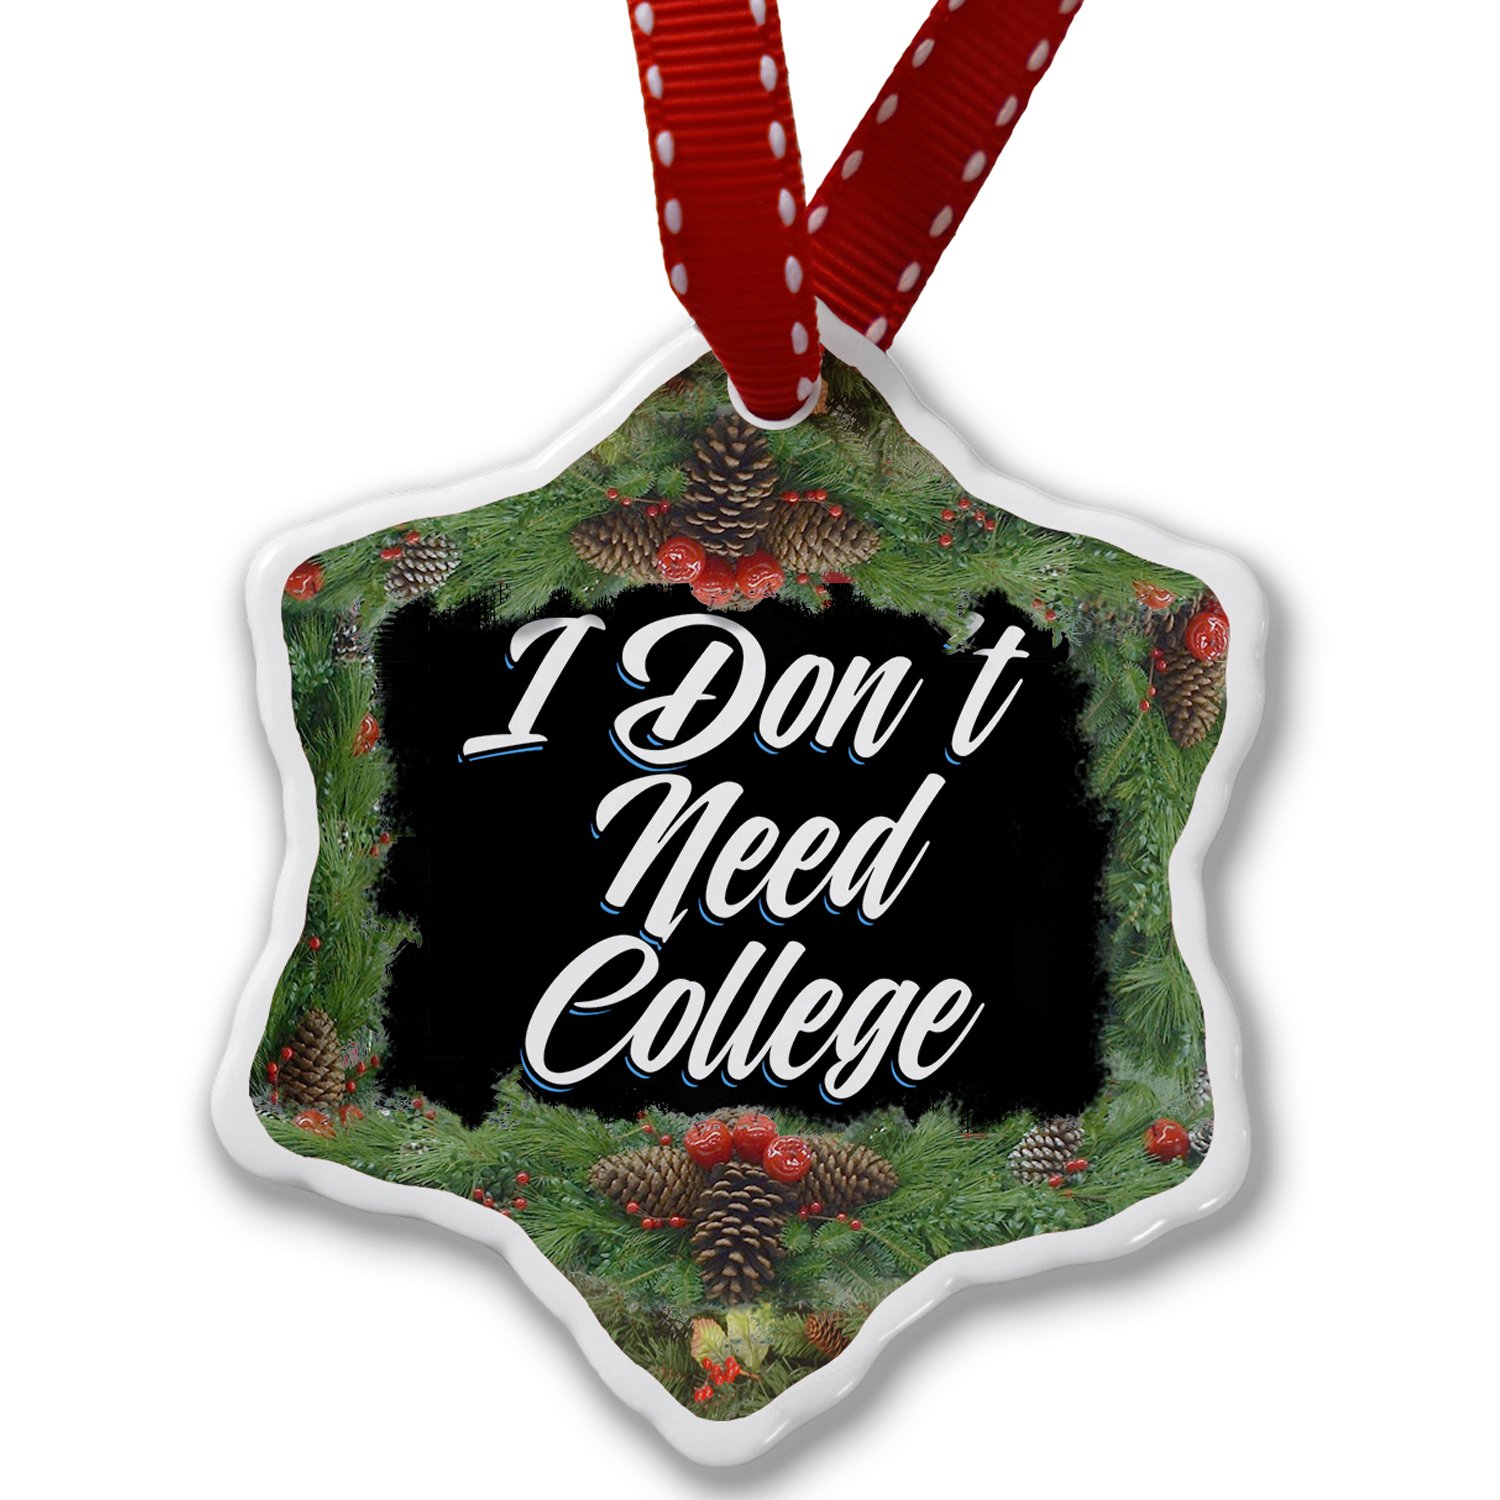 Christmas Ornament Classic design I Don't Need College - Neonblond by NEONBLOND (Image #1)